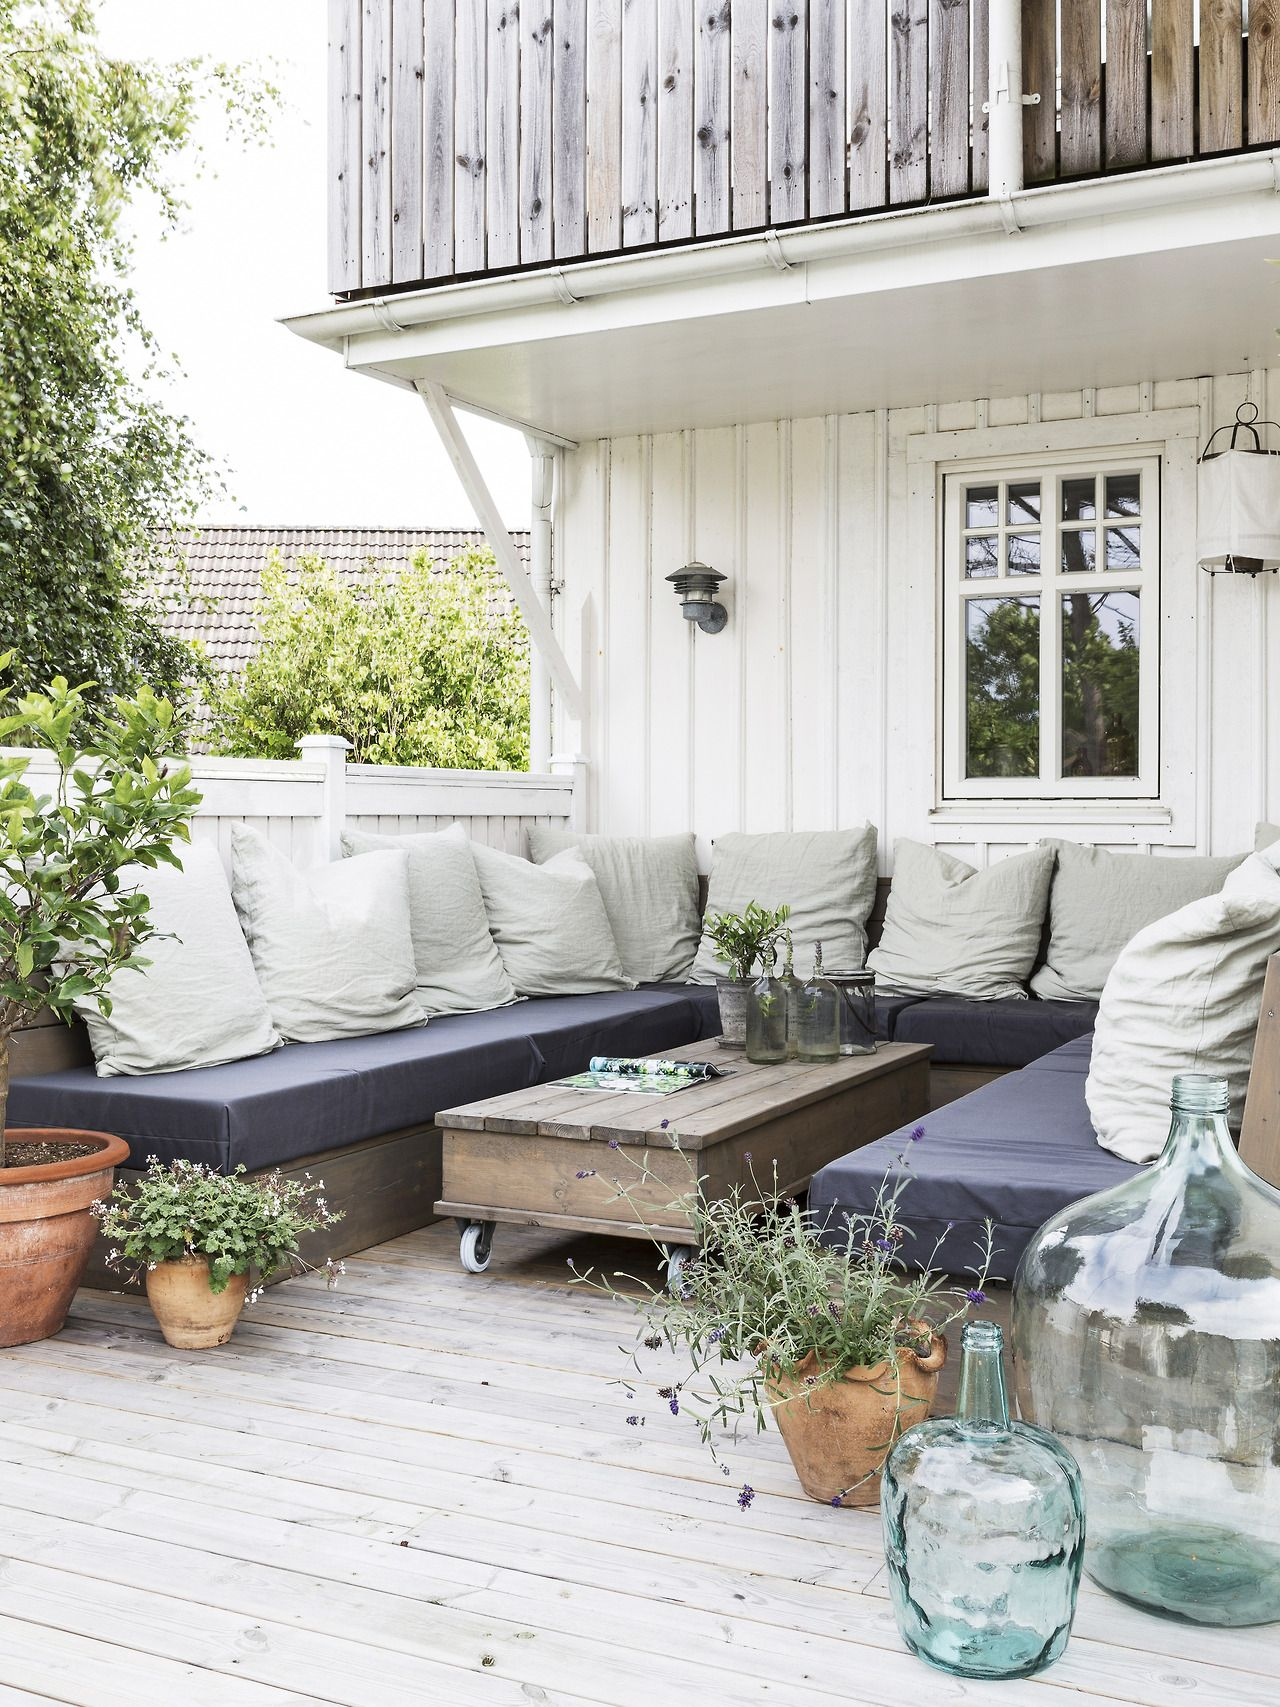 Pin by Madisyn Gold on new place | Pinterest | Patios, Outdoor ...